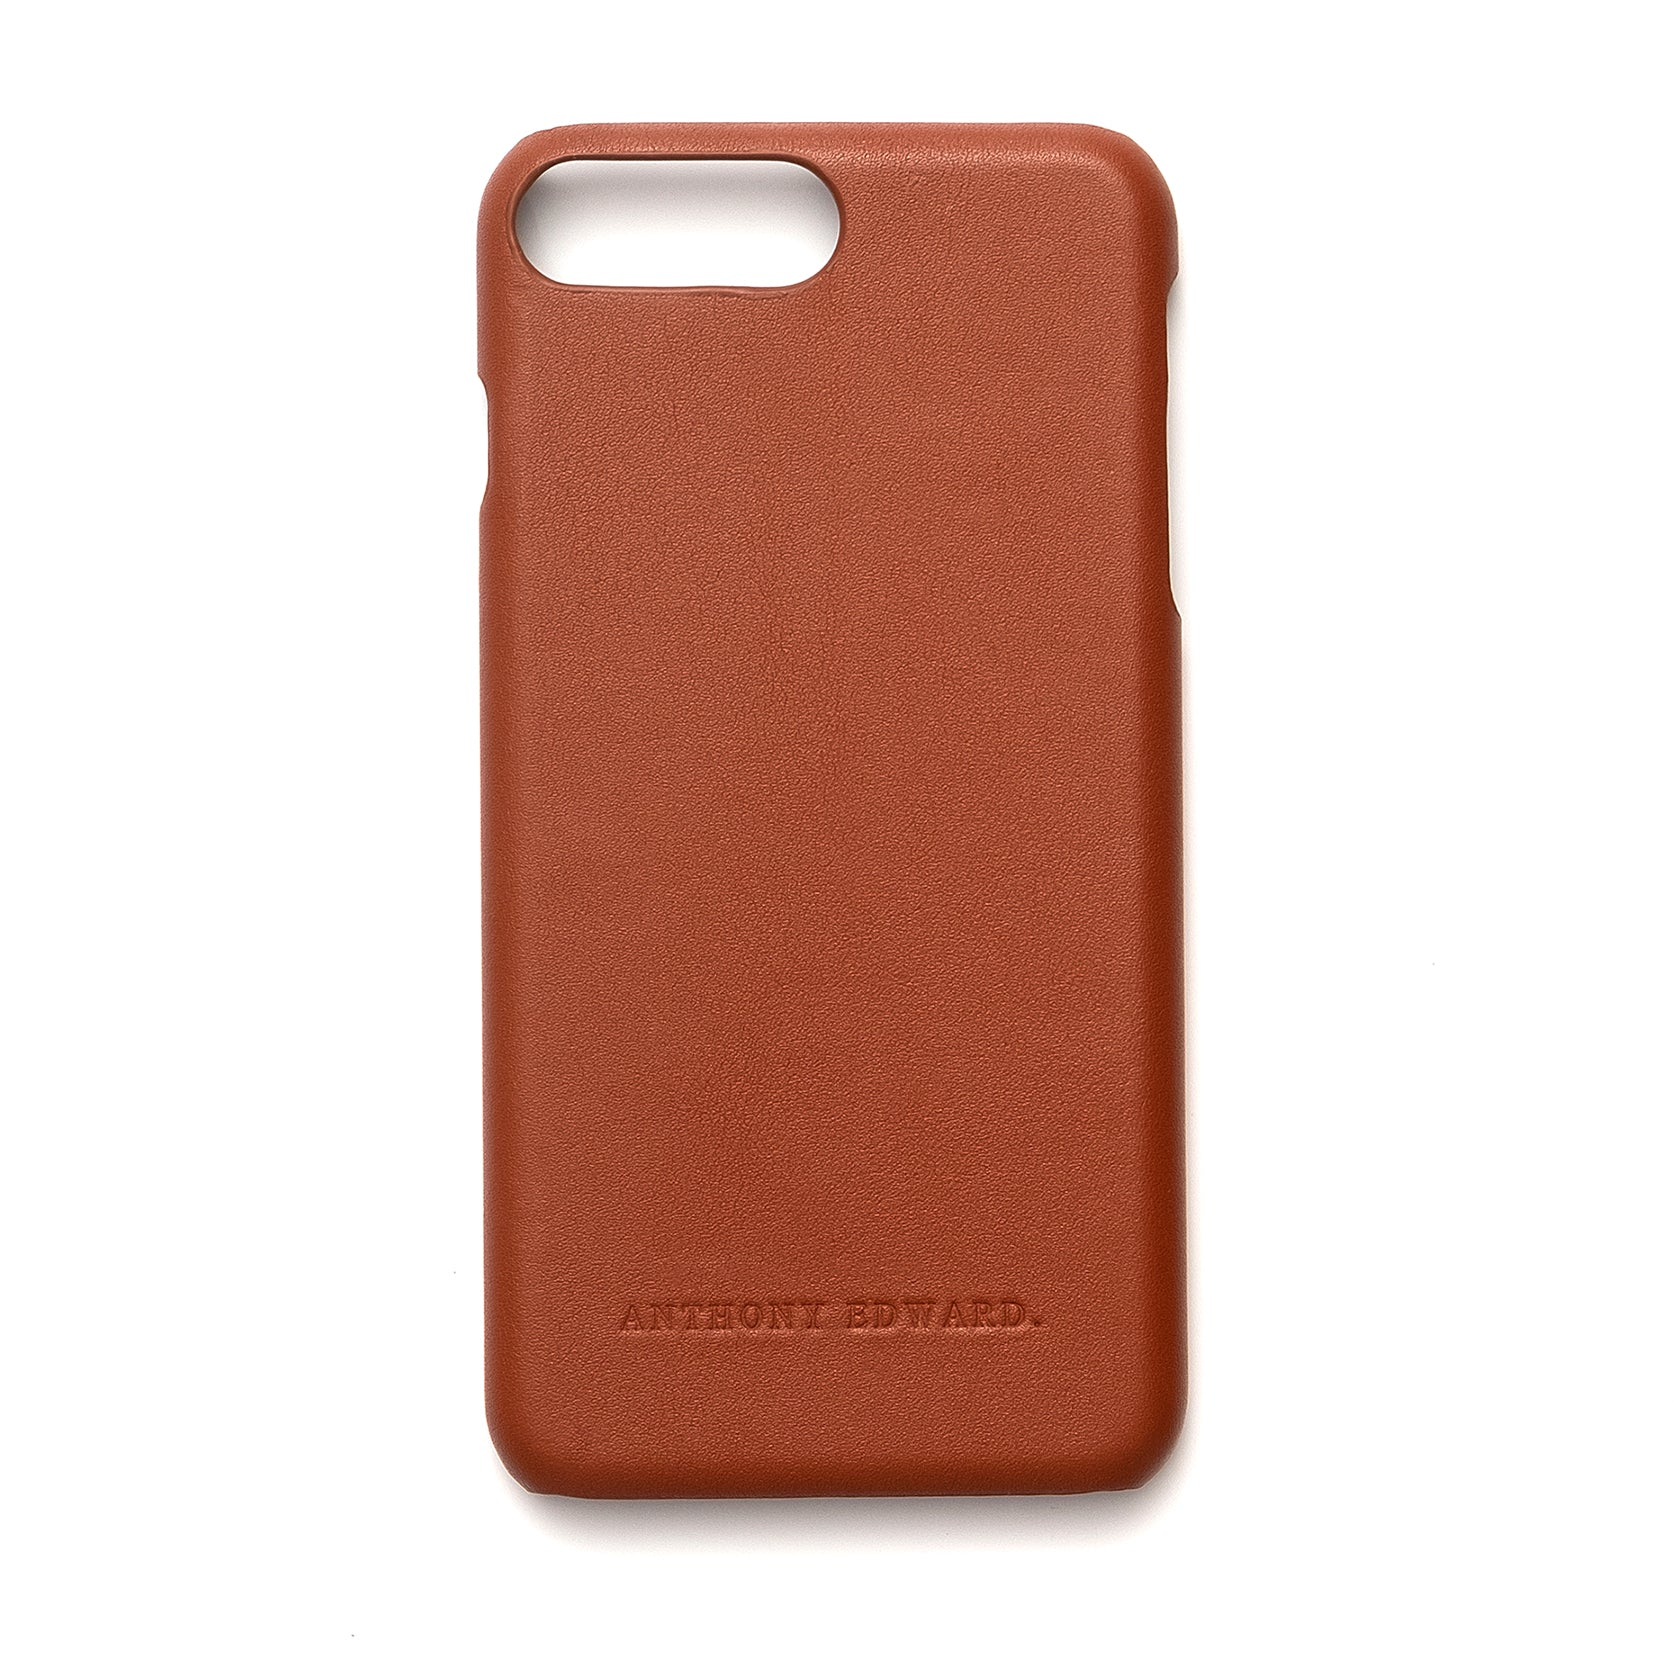 IPHONE 7/8 PLUS COGNAC CASE (2022572163121)